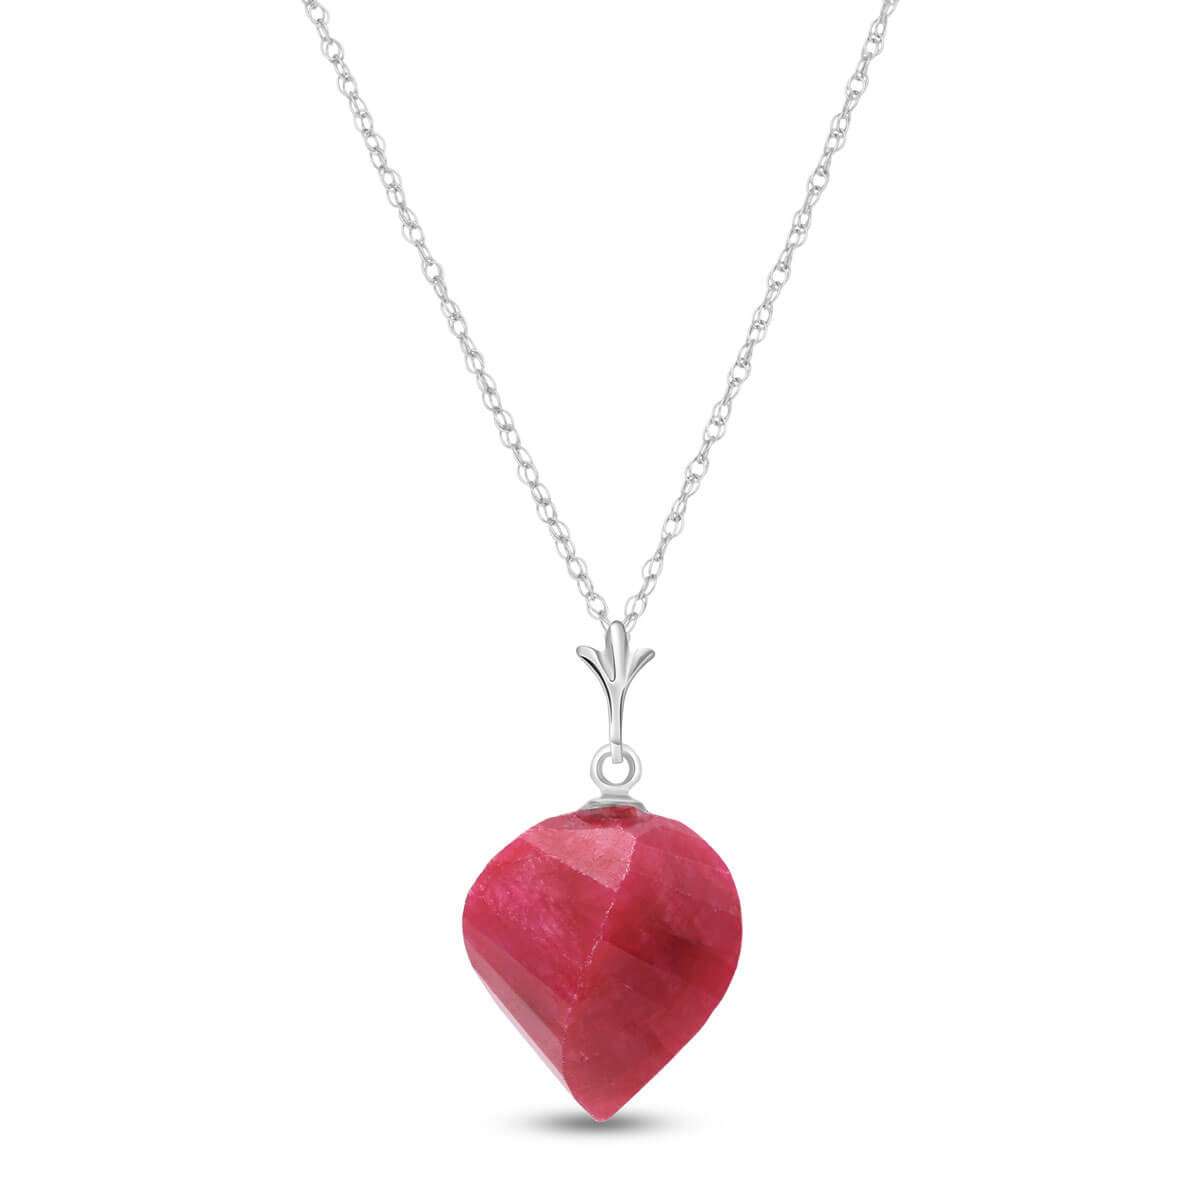 Ruby Briolette Pendant Necklace 15.25 ct in 9ct White Gold